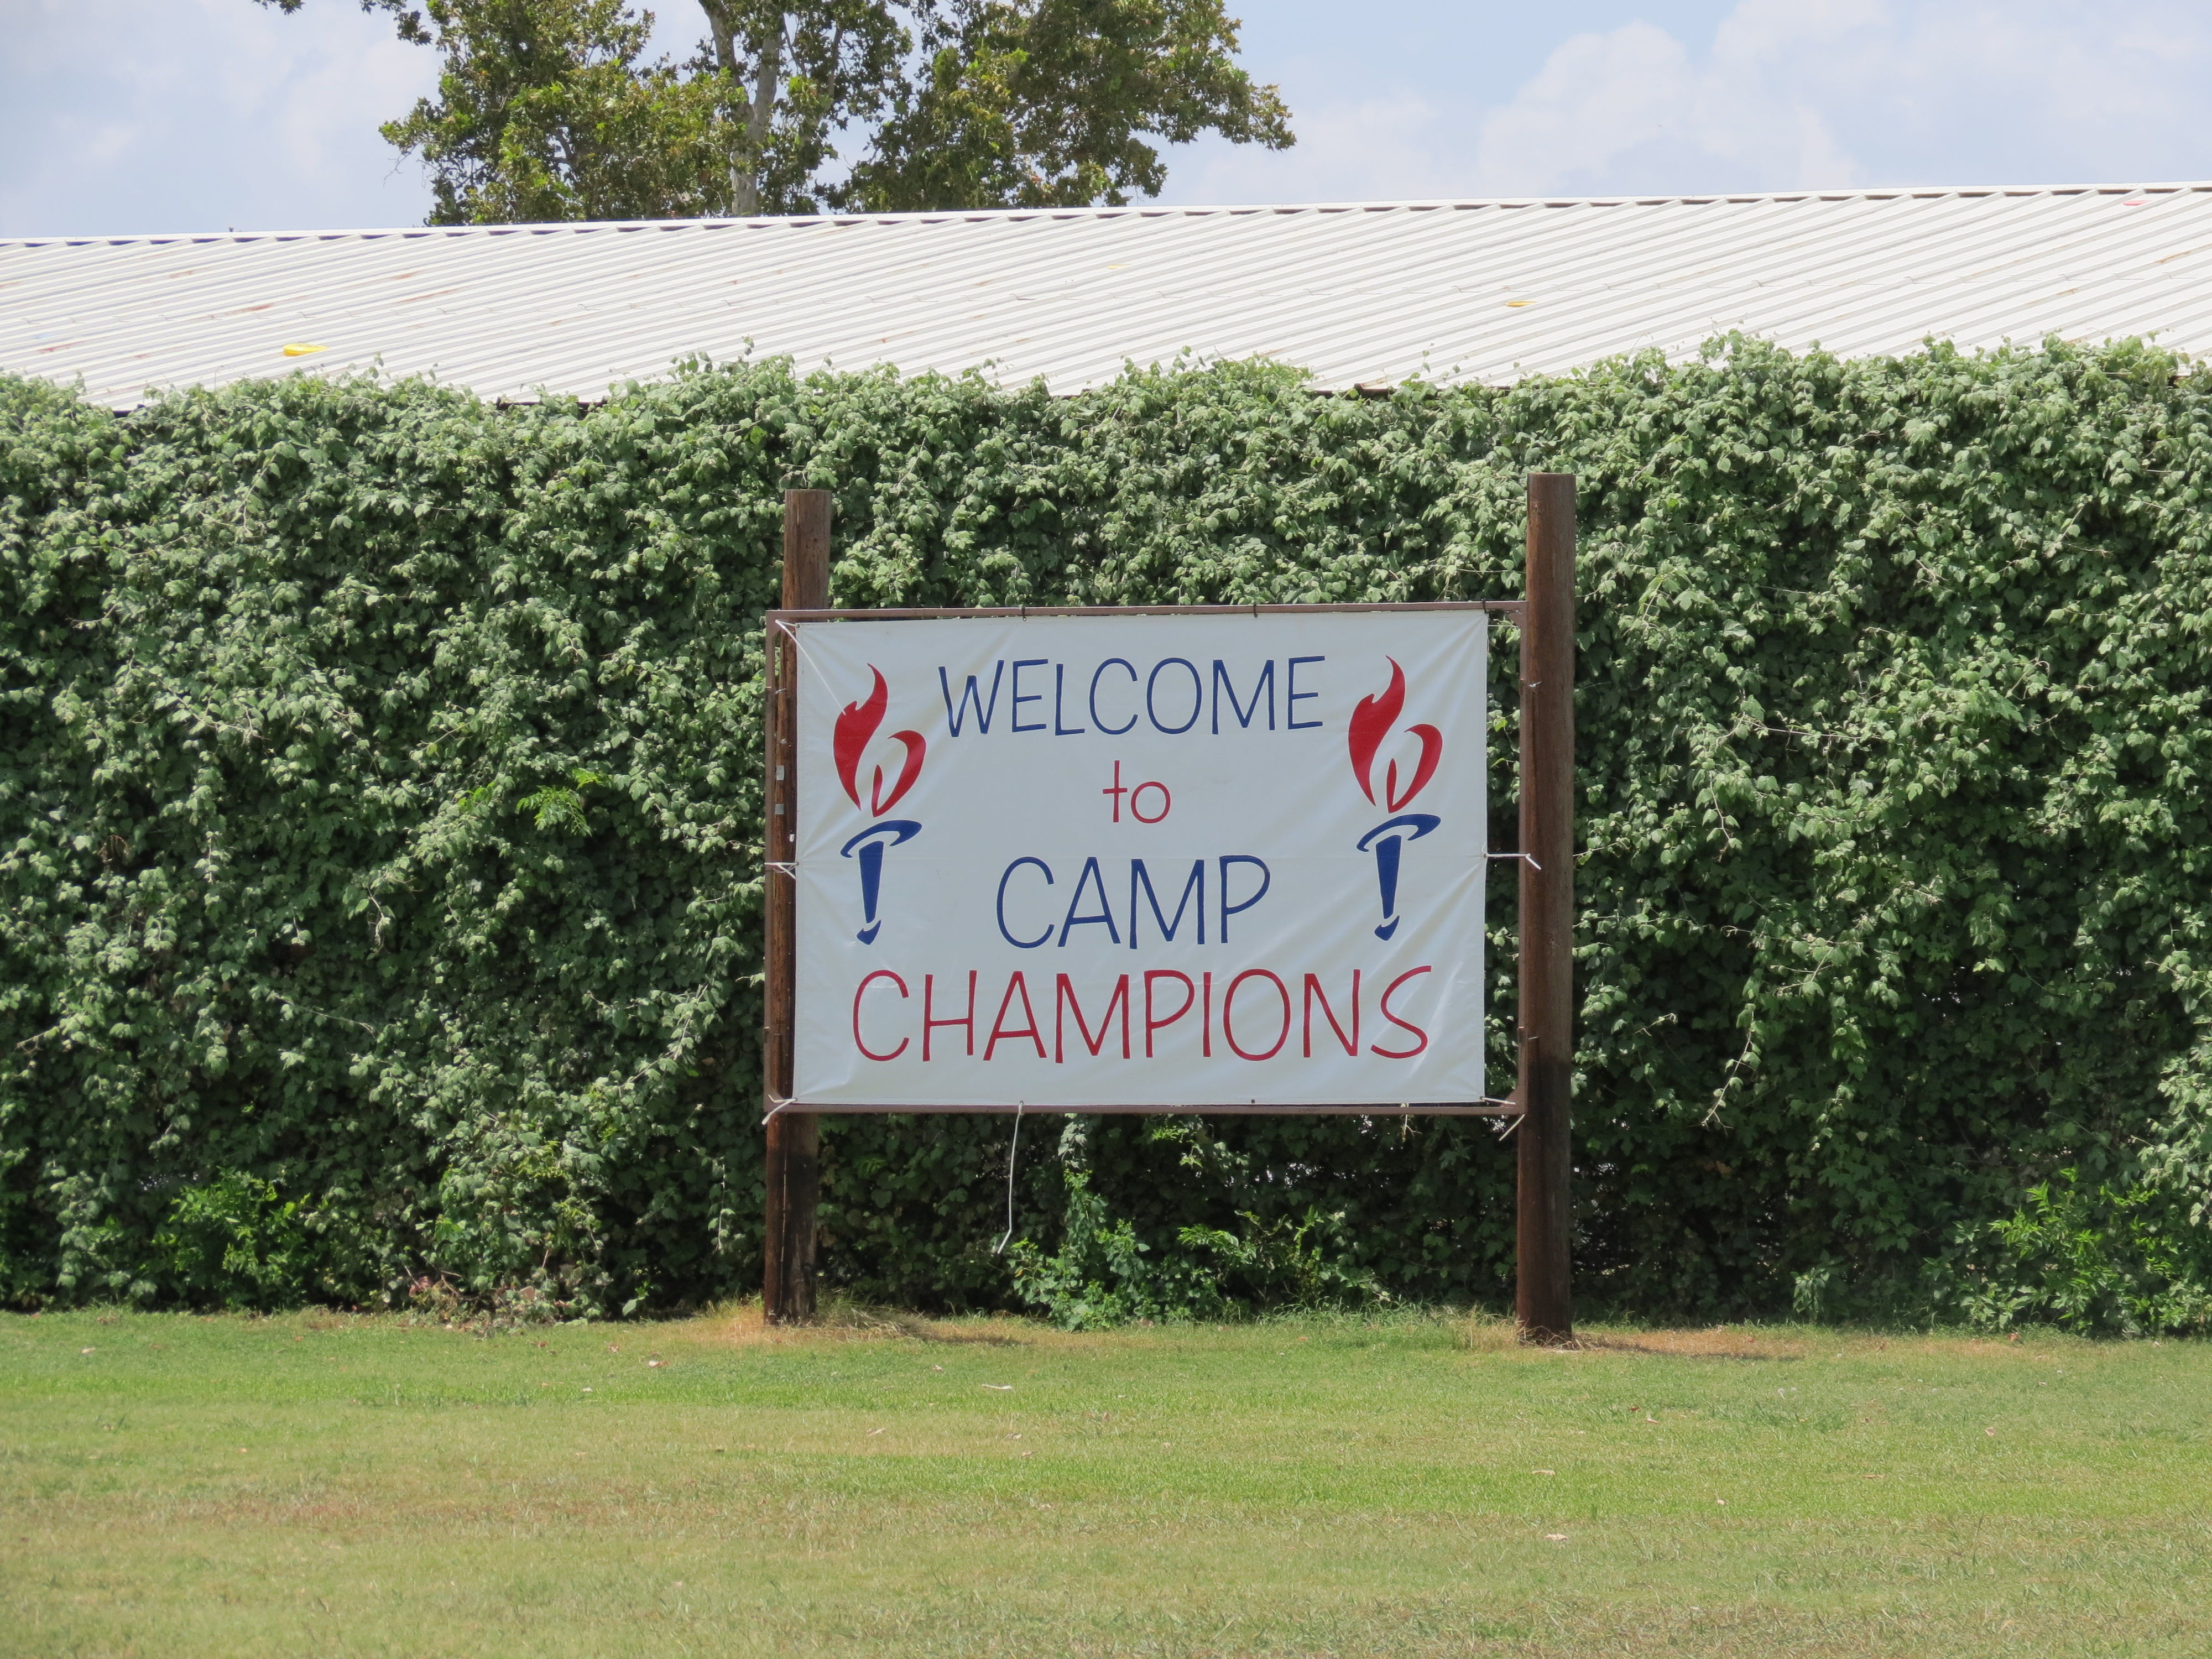 Camp Champions welcome sign